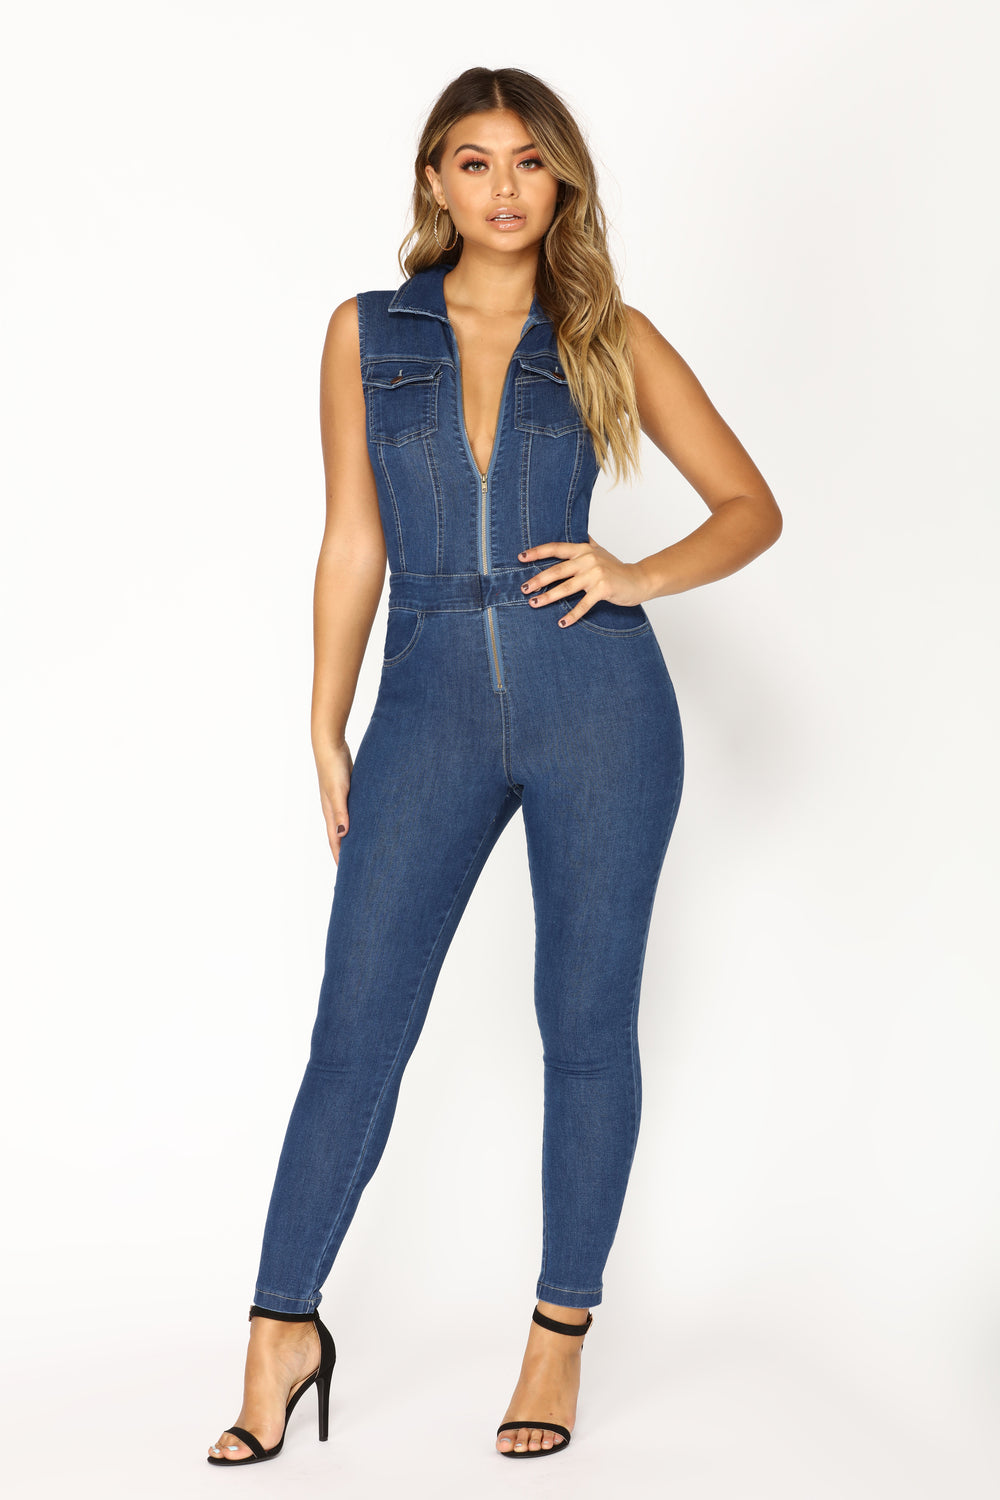 Playsuits & Jumpsuits Pick out low price playsuits and jumpsuits in the boohoo seasonal sale. Stand out from the crowd in a skort playsuit, or be a head-to-toe trendsetter in a plunge neck jumpsuit - the genius alternative to a dress for your after dark wardrobe.